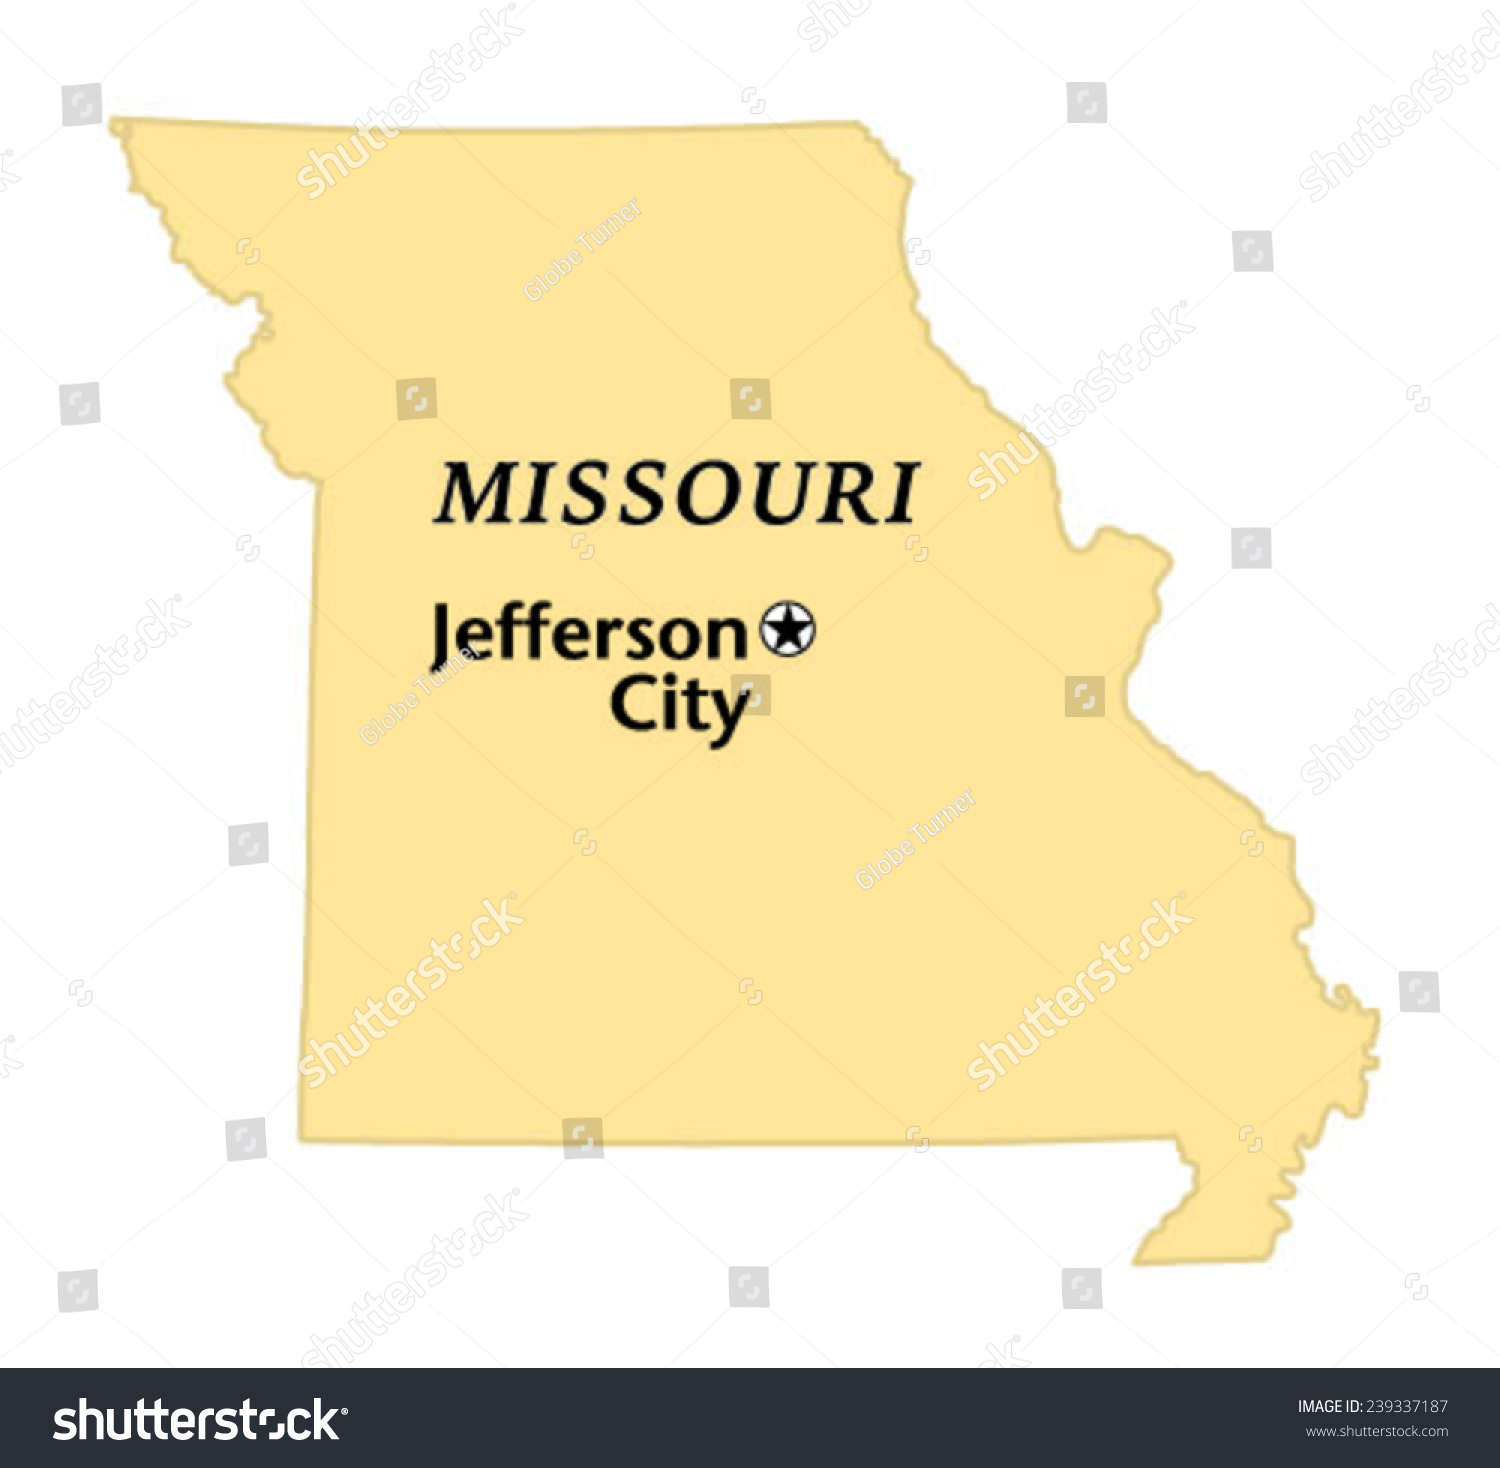 Jefferson City Missouri Locate Map Stock Vector (Royalty Free ...